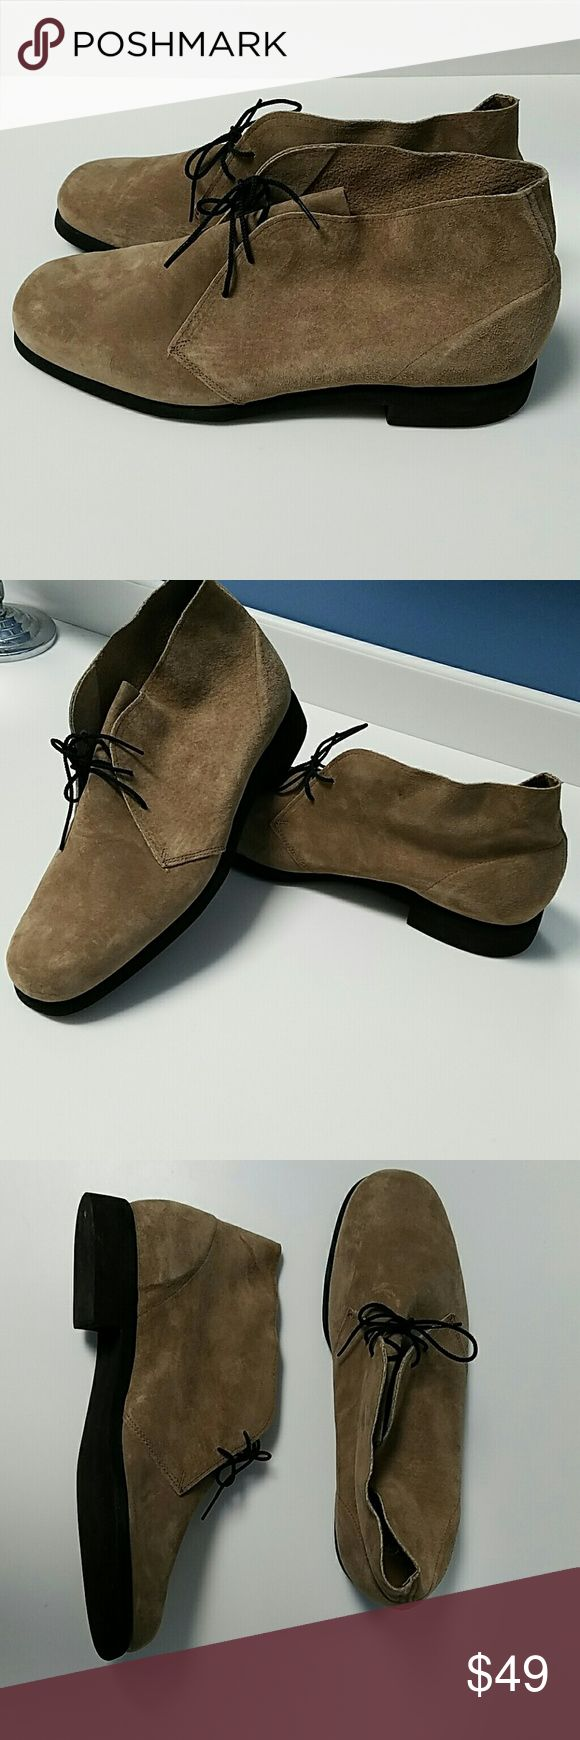 MENS DESERT CHUKKA TAN HUSH PUPPIES BOOTS These look brand new! These are suede leather desert boots or chukkas. Great look with rolled skinny jeans.  Brand: Hush Puppies  Size 11 1/2  Color: Tan Hush Puppies Shoes Chukka Boots